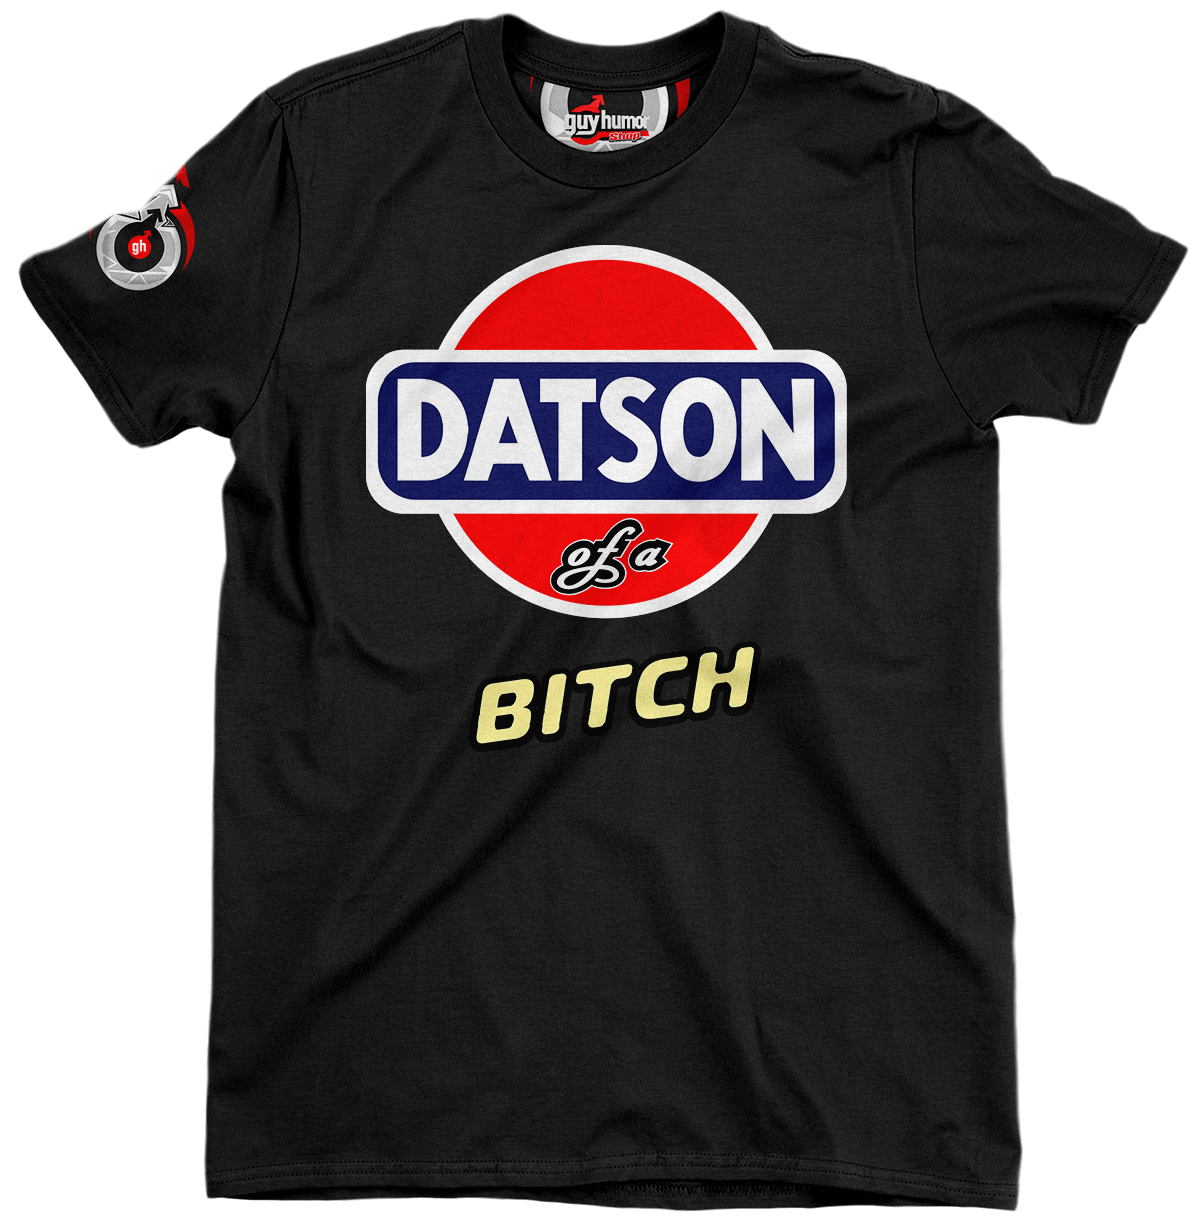 Datson of a Bitch - shop.guyhumor.com